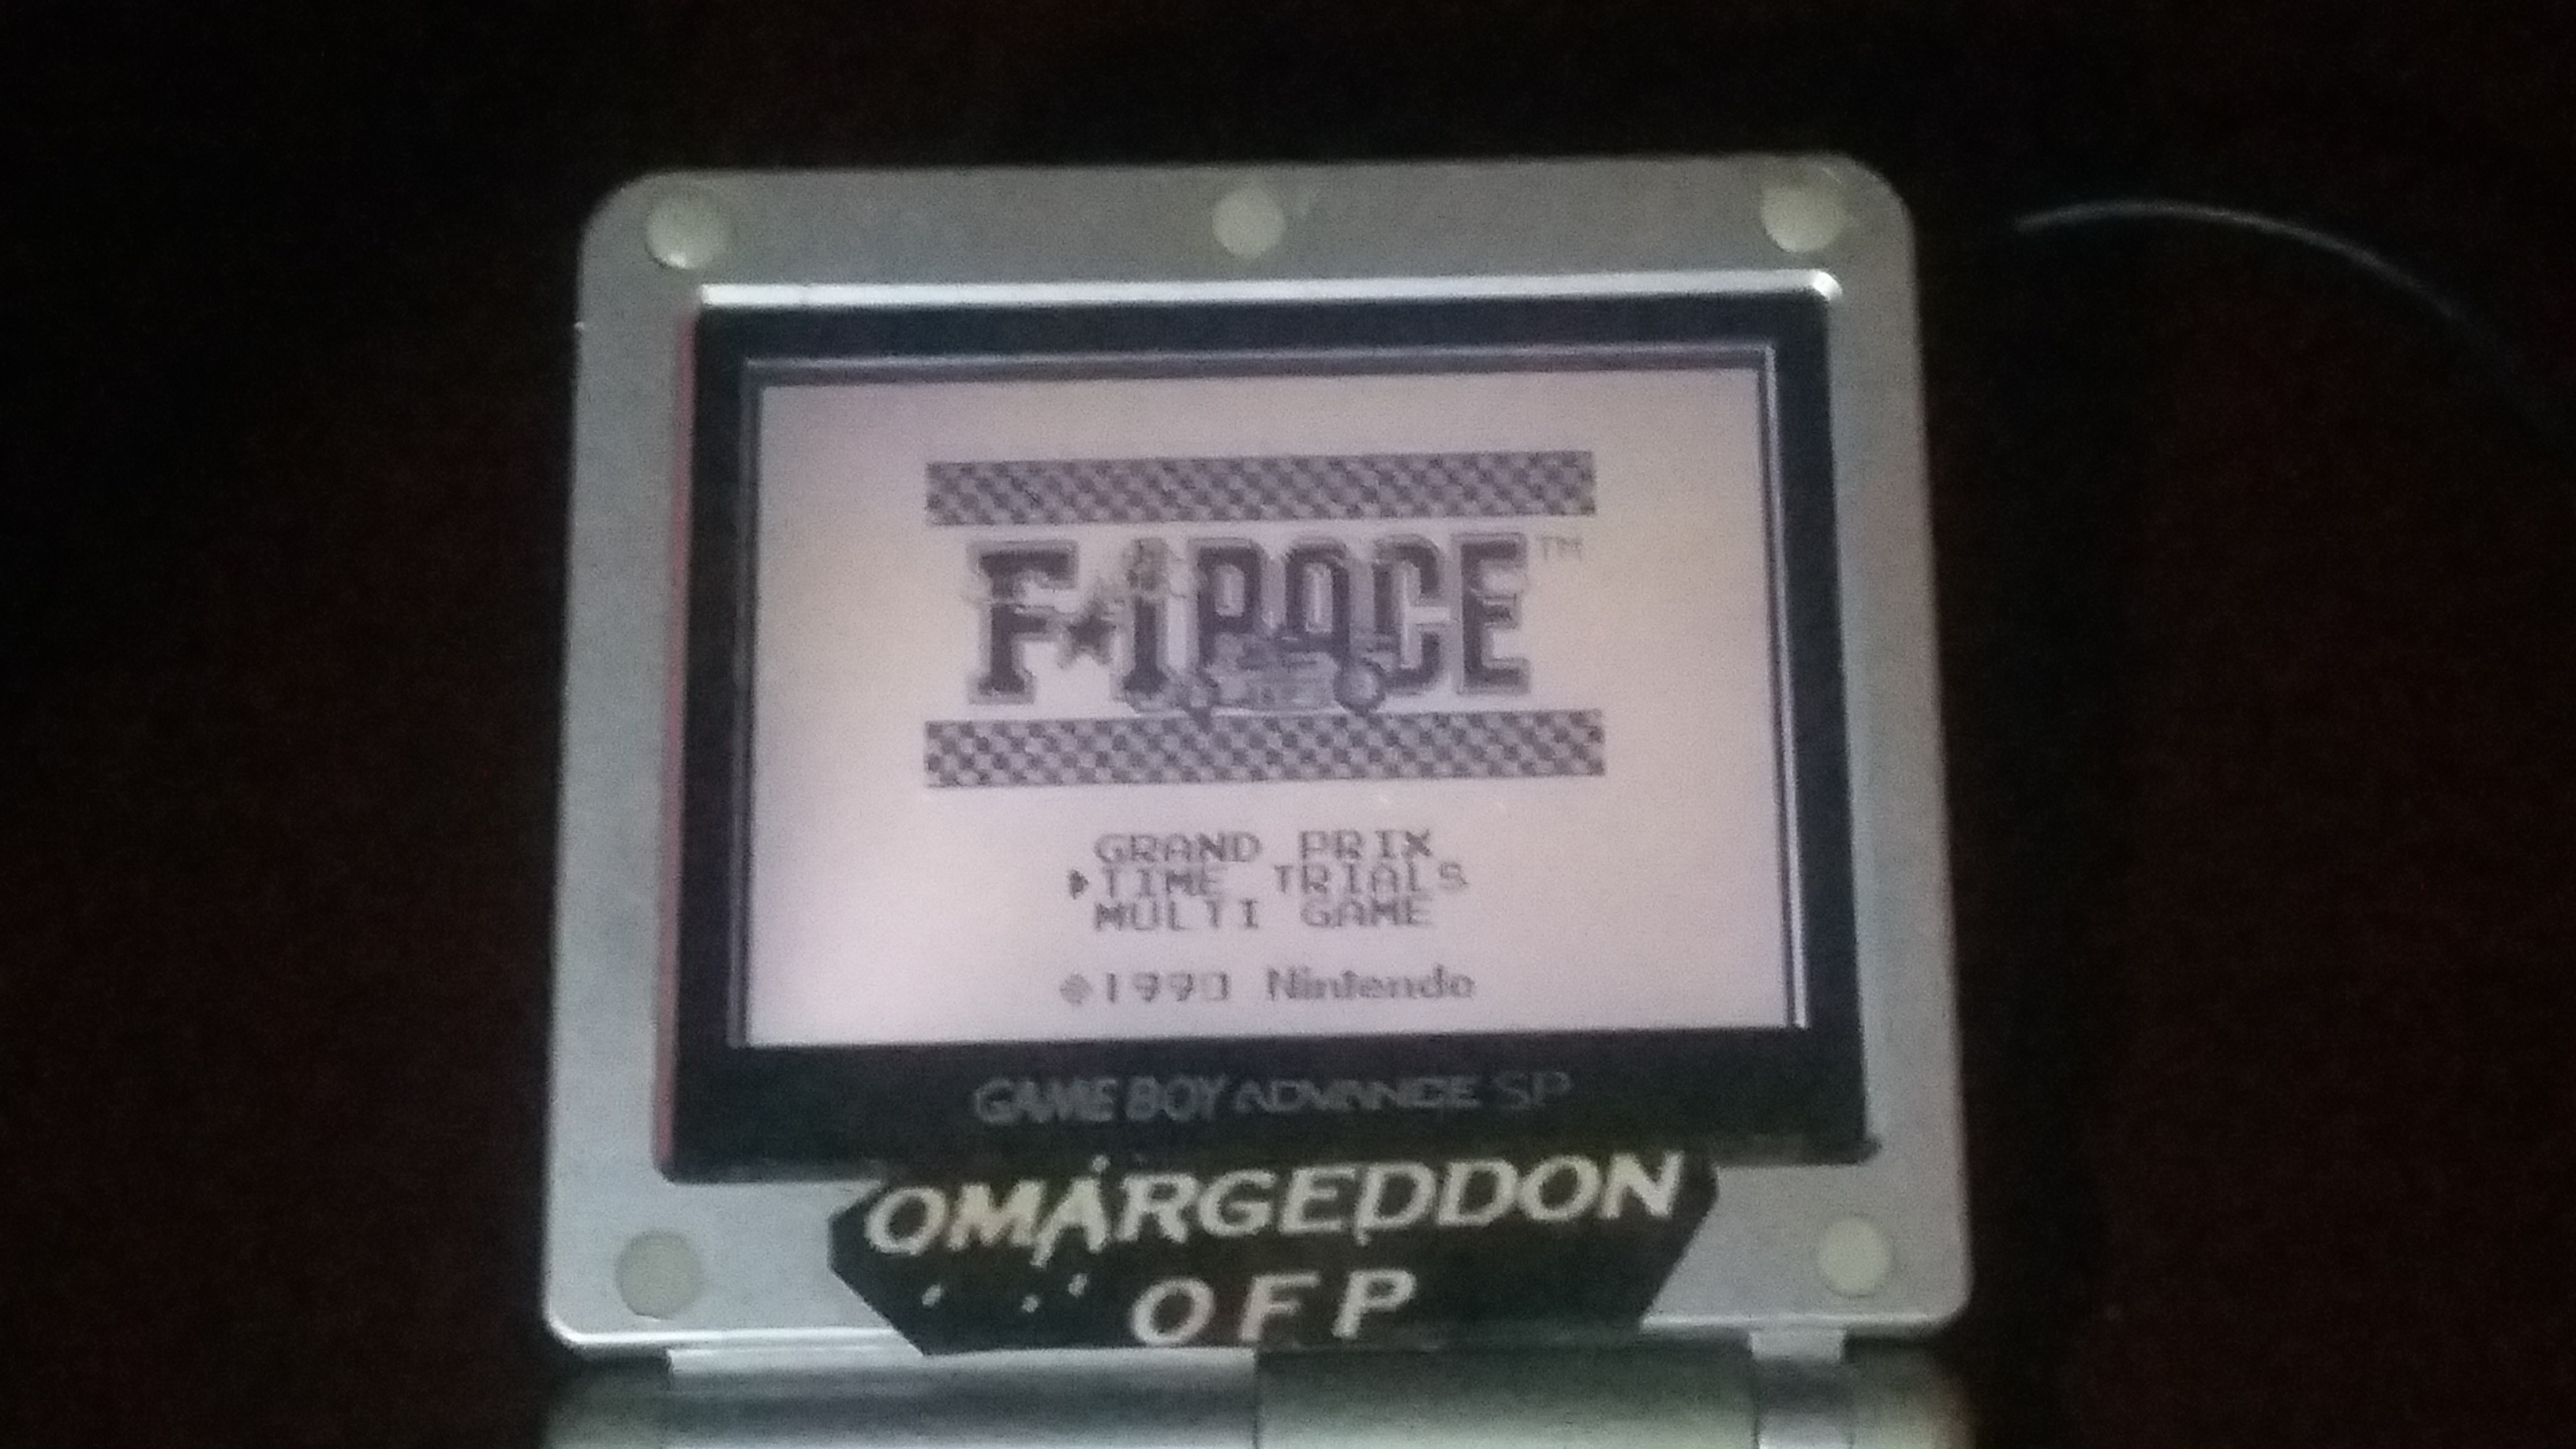 omargeddon: F-1 Race: Time Trials: Single: India [Best Lap] (Game Boy) 0:01:17.75 points on 2018-09-25 23:04:54